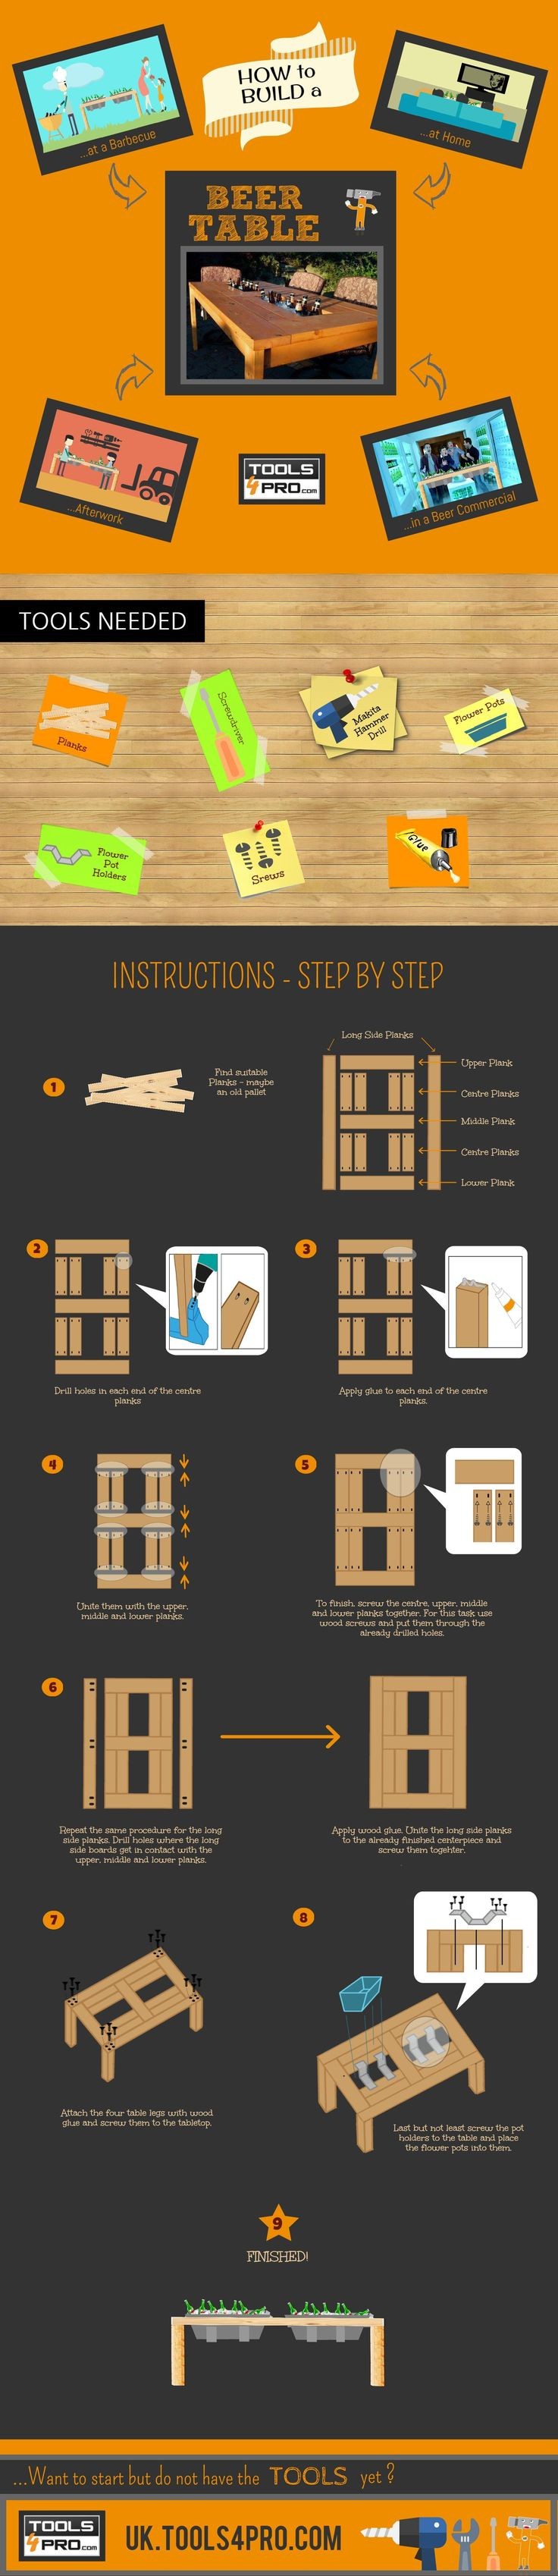 How to Build a Beer Table: We know that you liked the beer table and that would like to build one yourself, so today we will show you our secret infographic that gives you step-by-step instructions on how to build your own beer table, with tools4pro. You will see that it is a super easy DIY project that will provide you with an unimaginable amount of fun to enjoy with your friends and family.  #Diy   #ideas #inspiration #homeimprovement    #weekend http://uk.tools4pro.com/